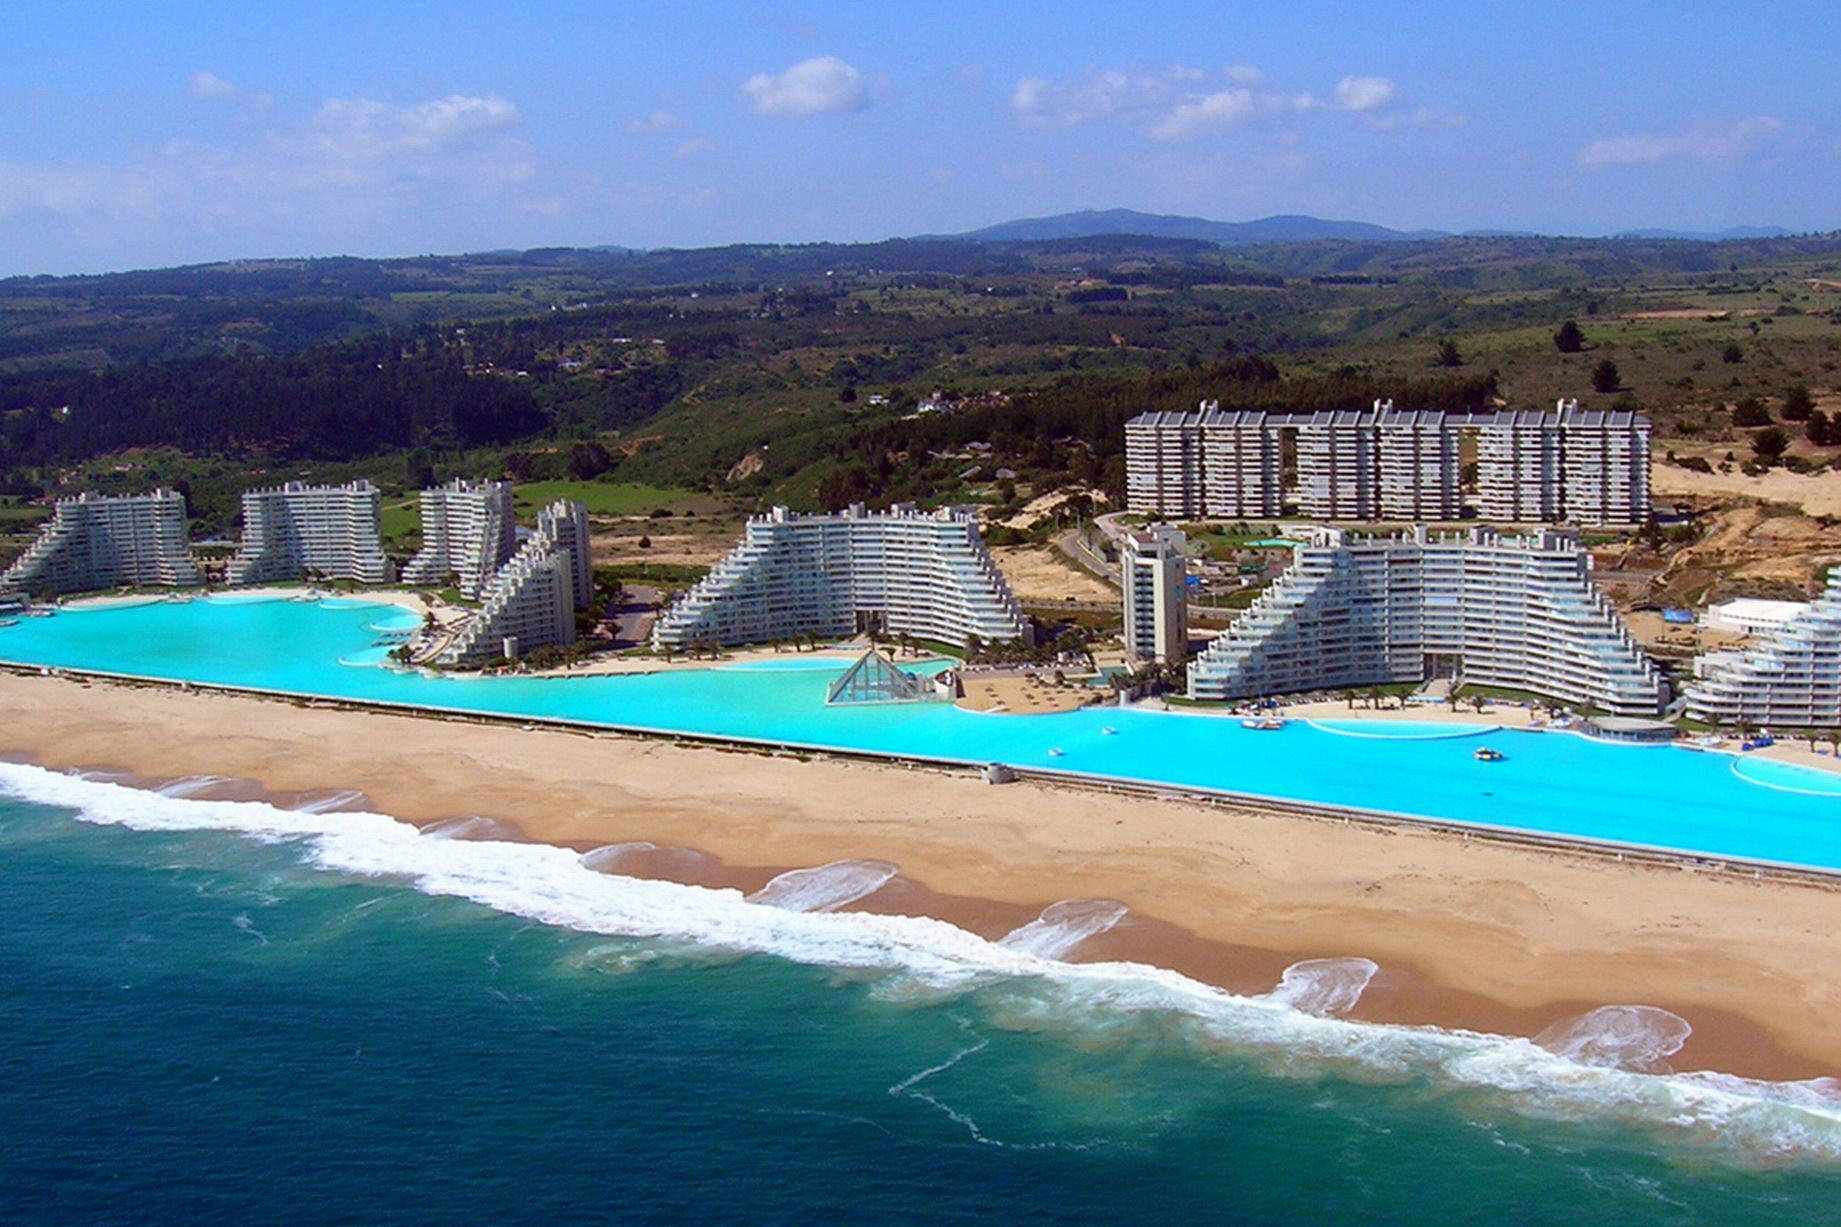 These Are Probably The Best Swimming Pools In The World UNILAD swim pools 134